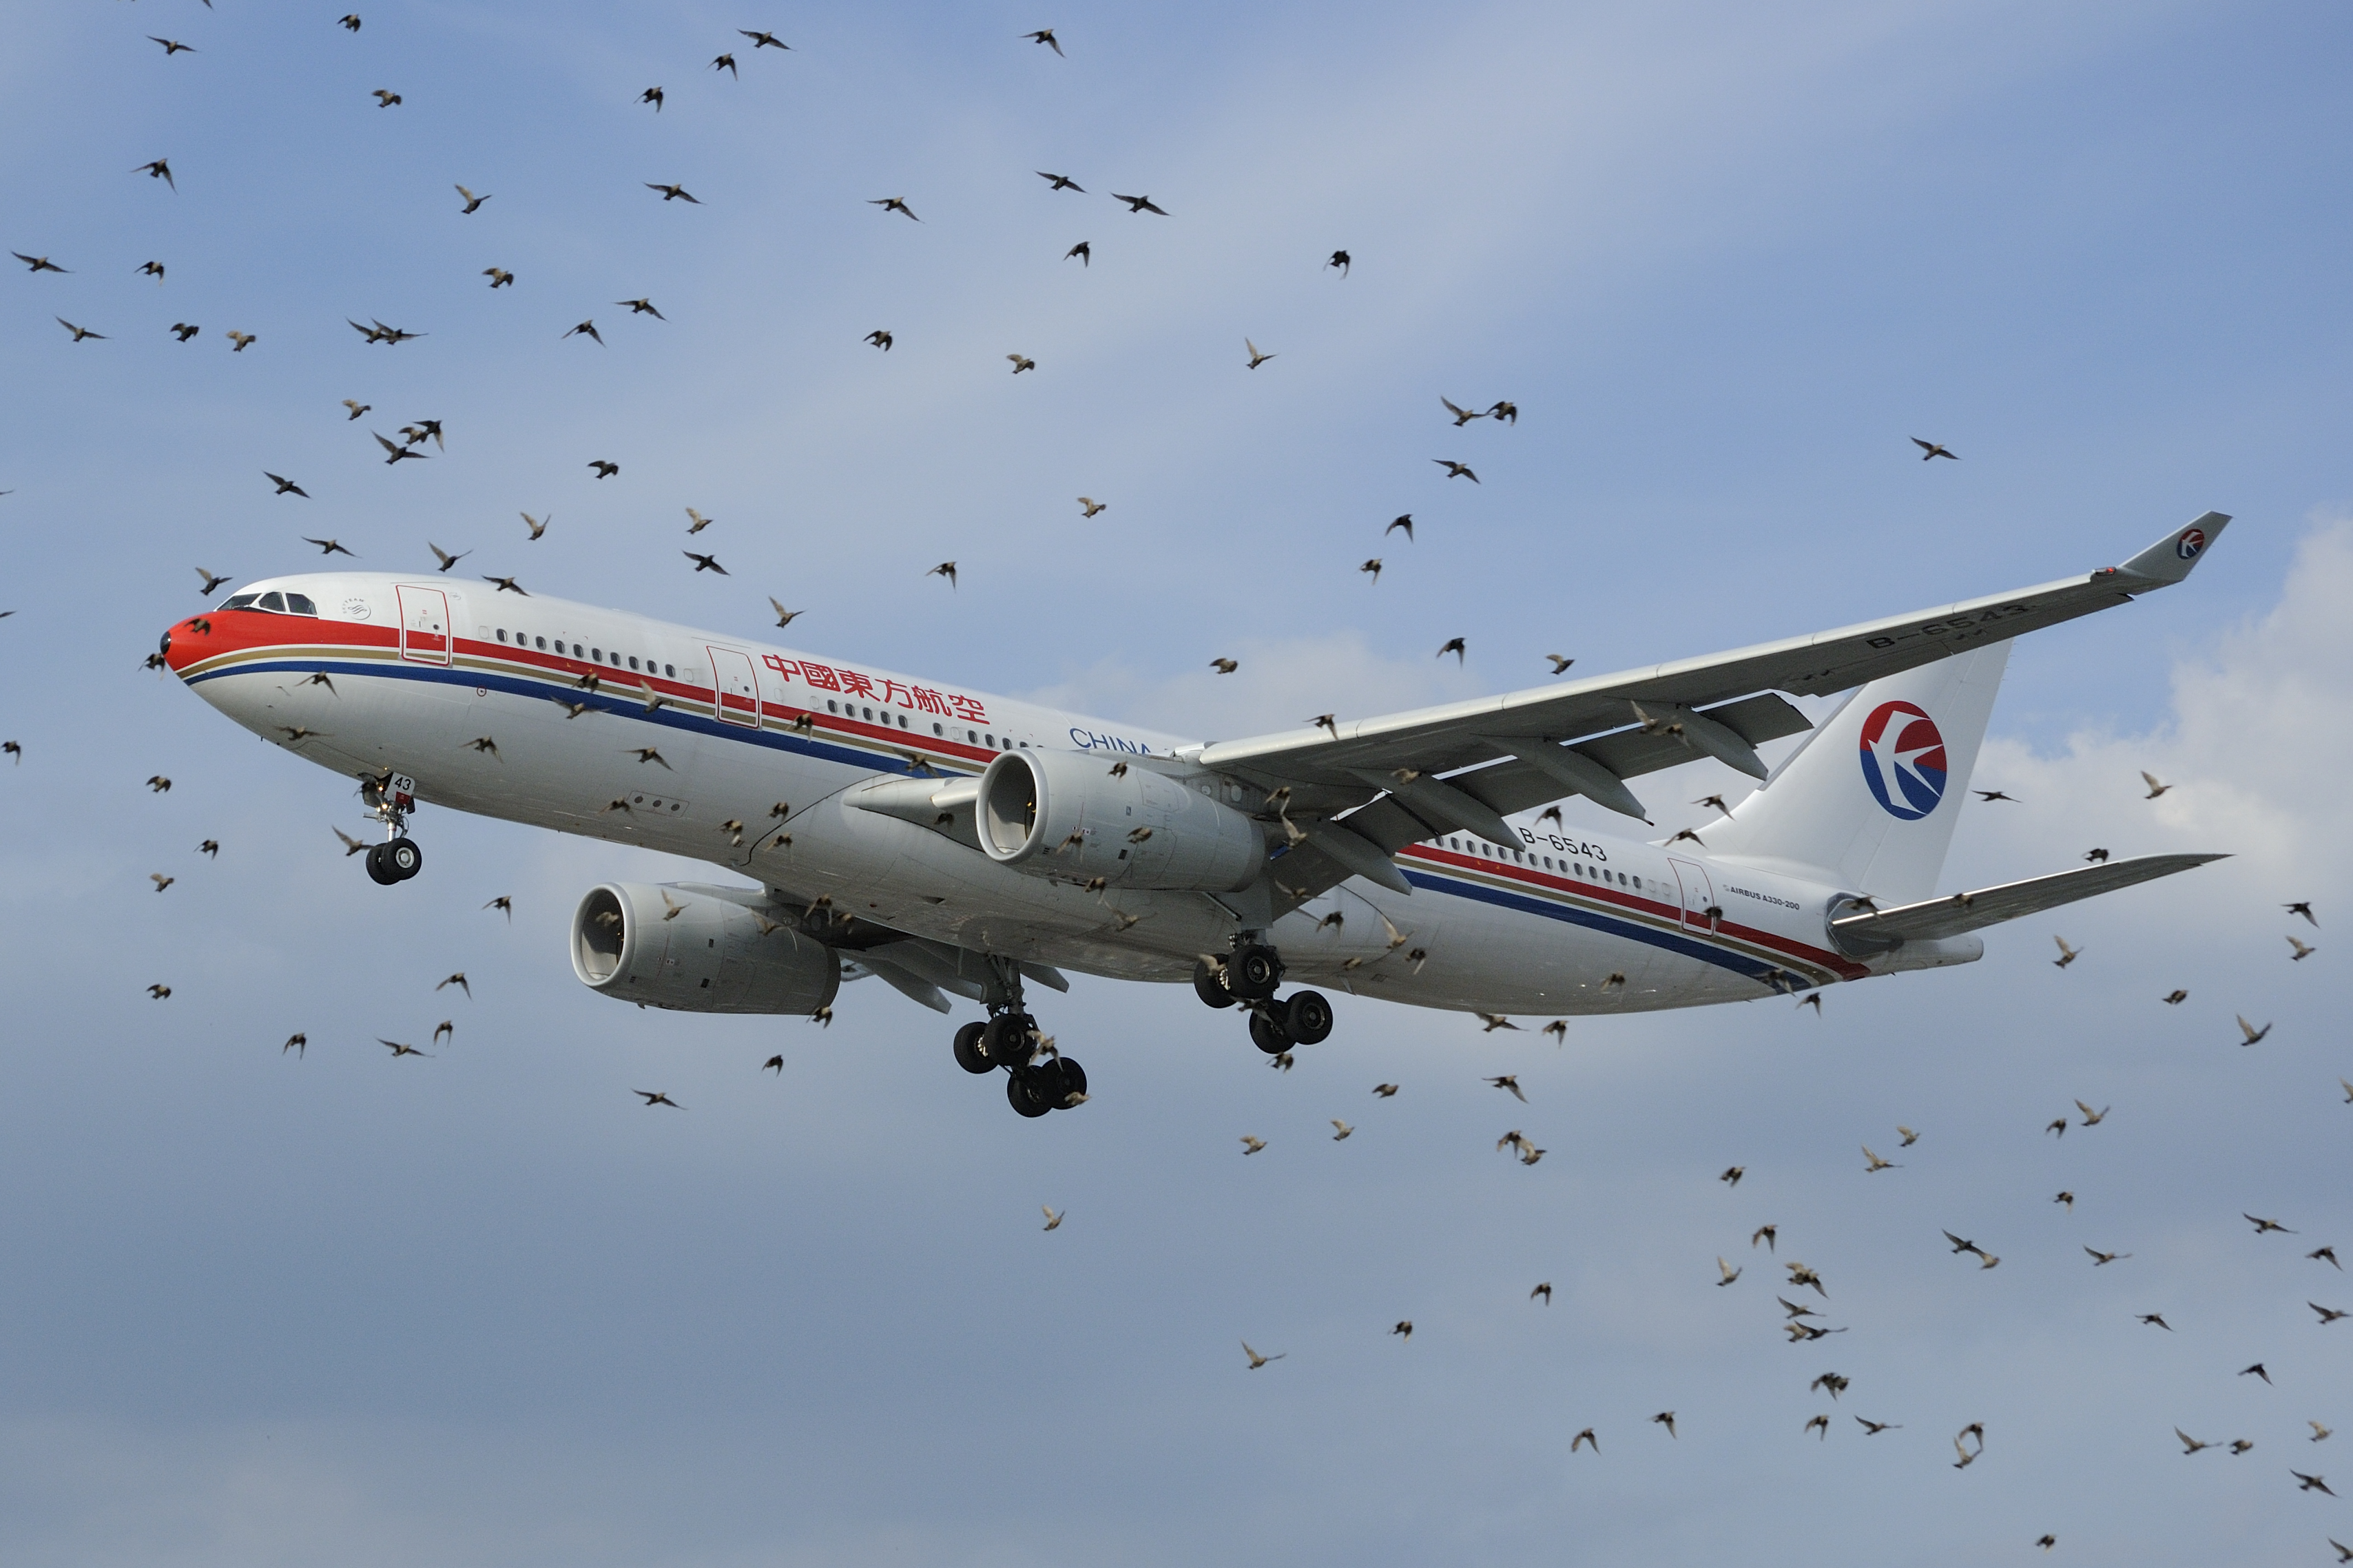 bird scaring services at airports